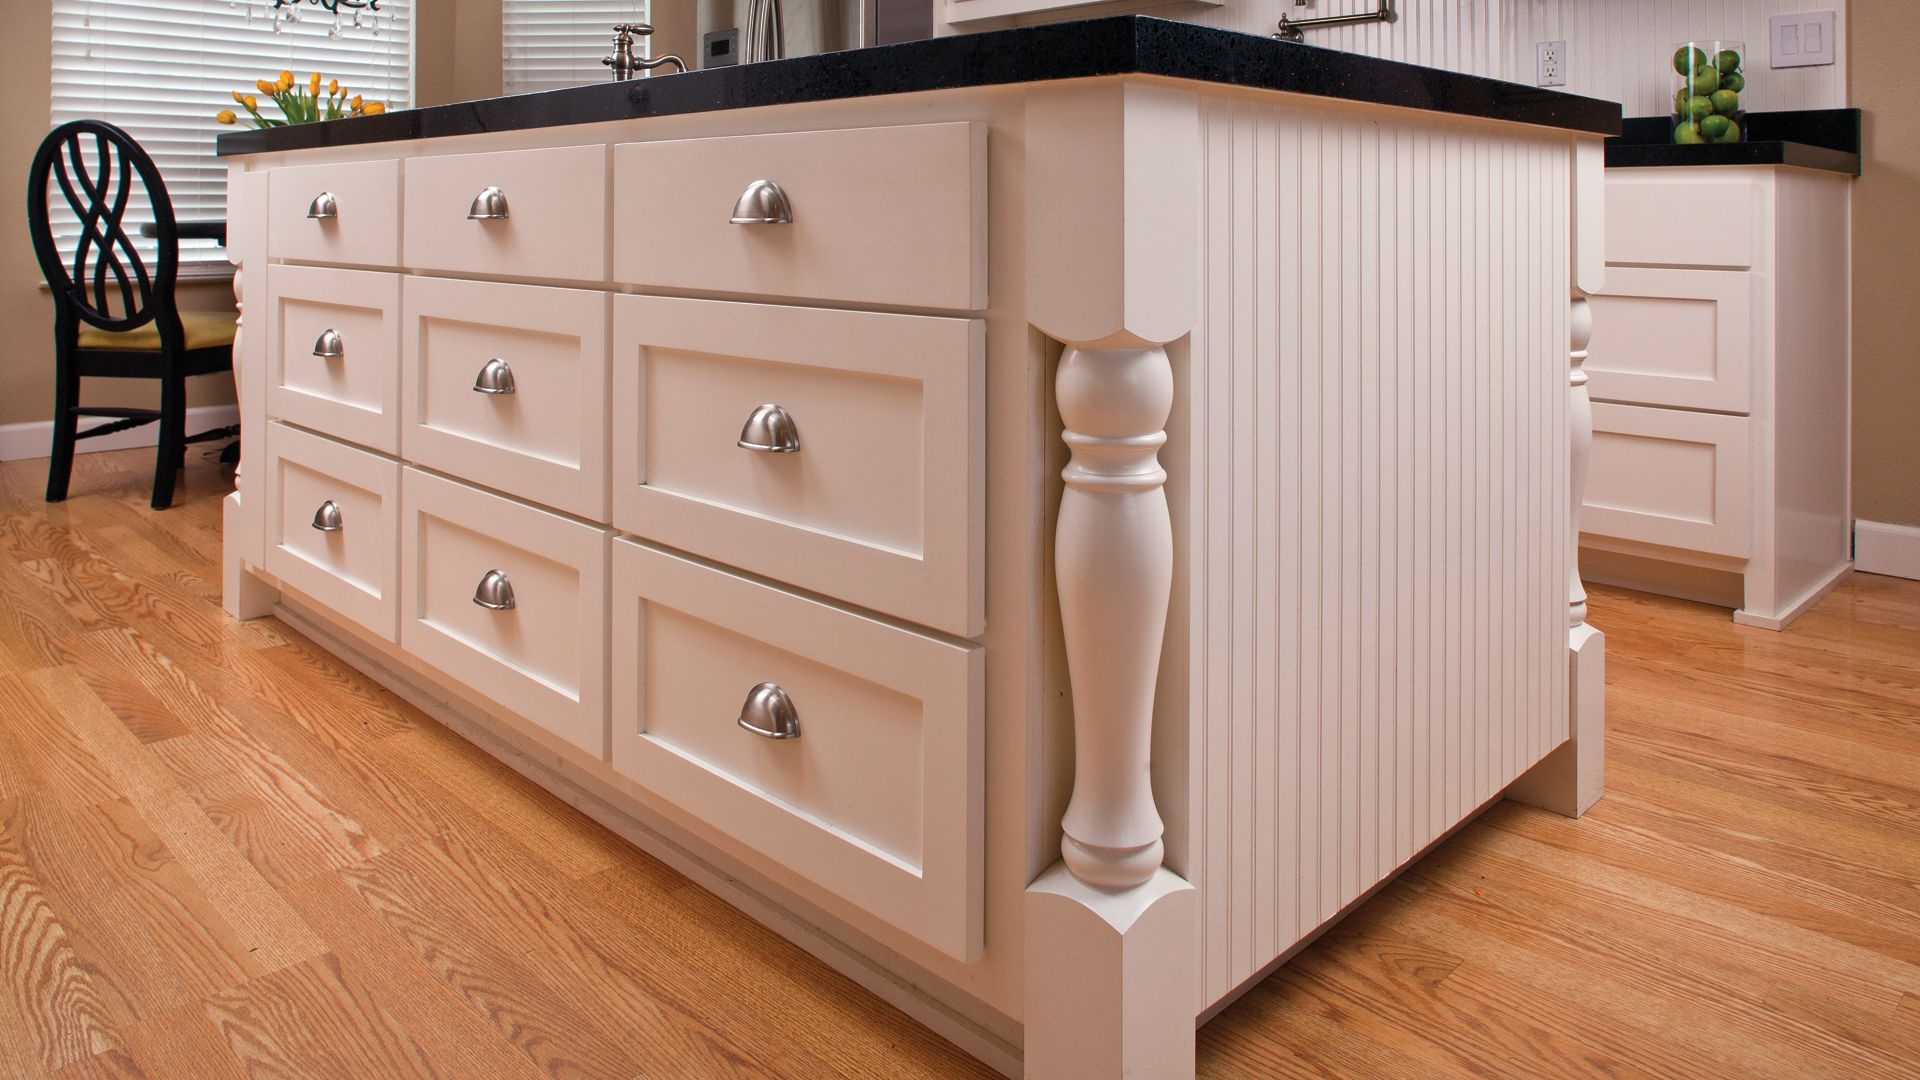 Refacing Kitchen Cabinets And Drawers